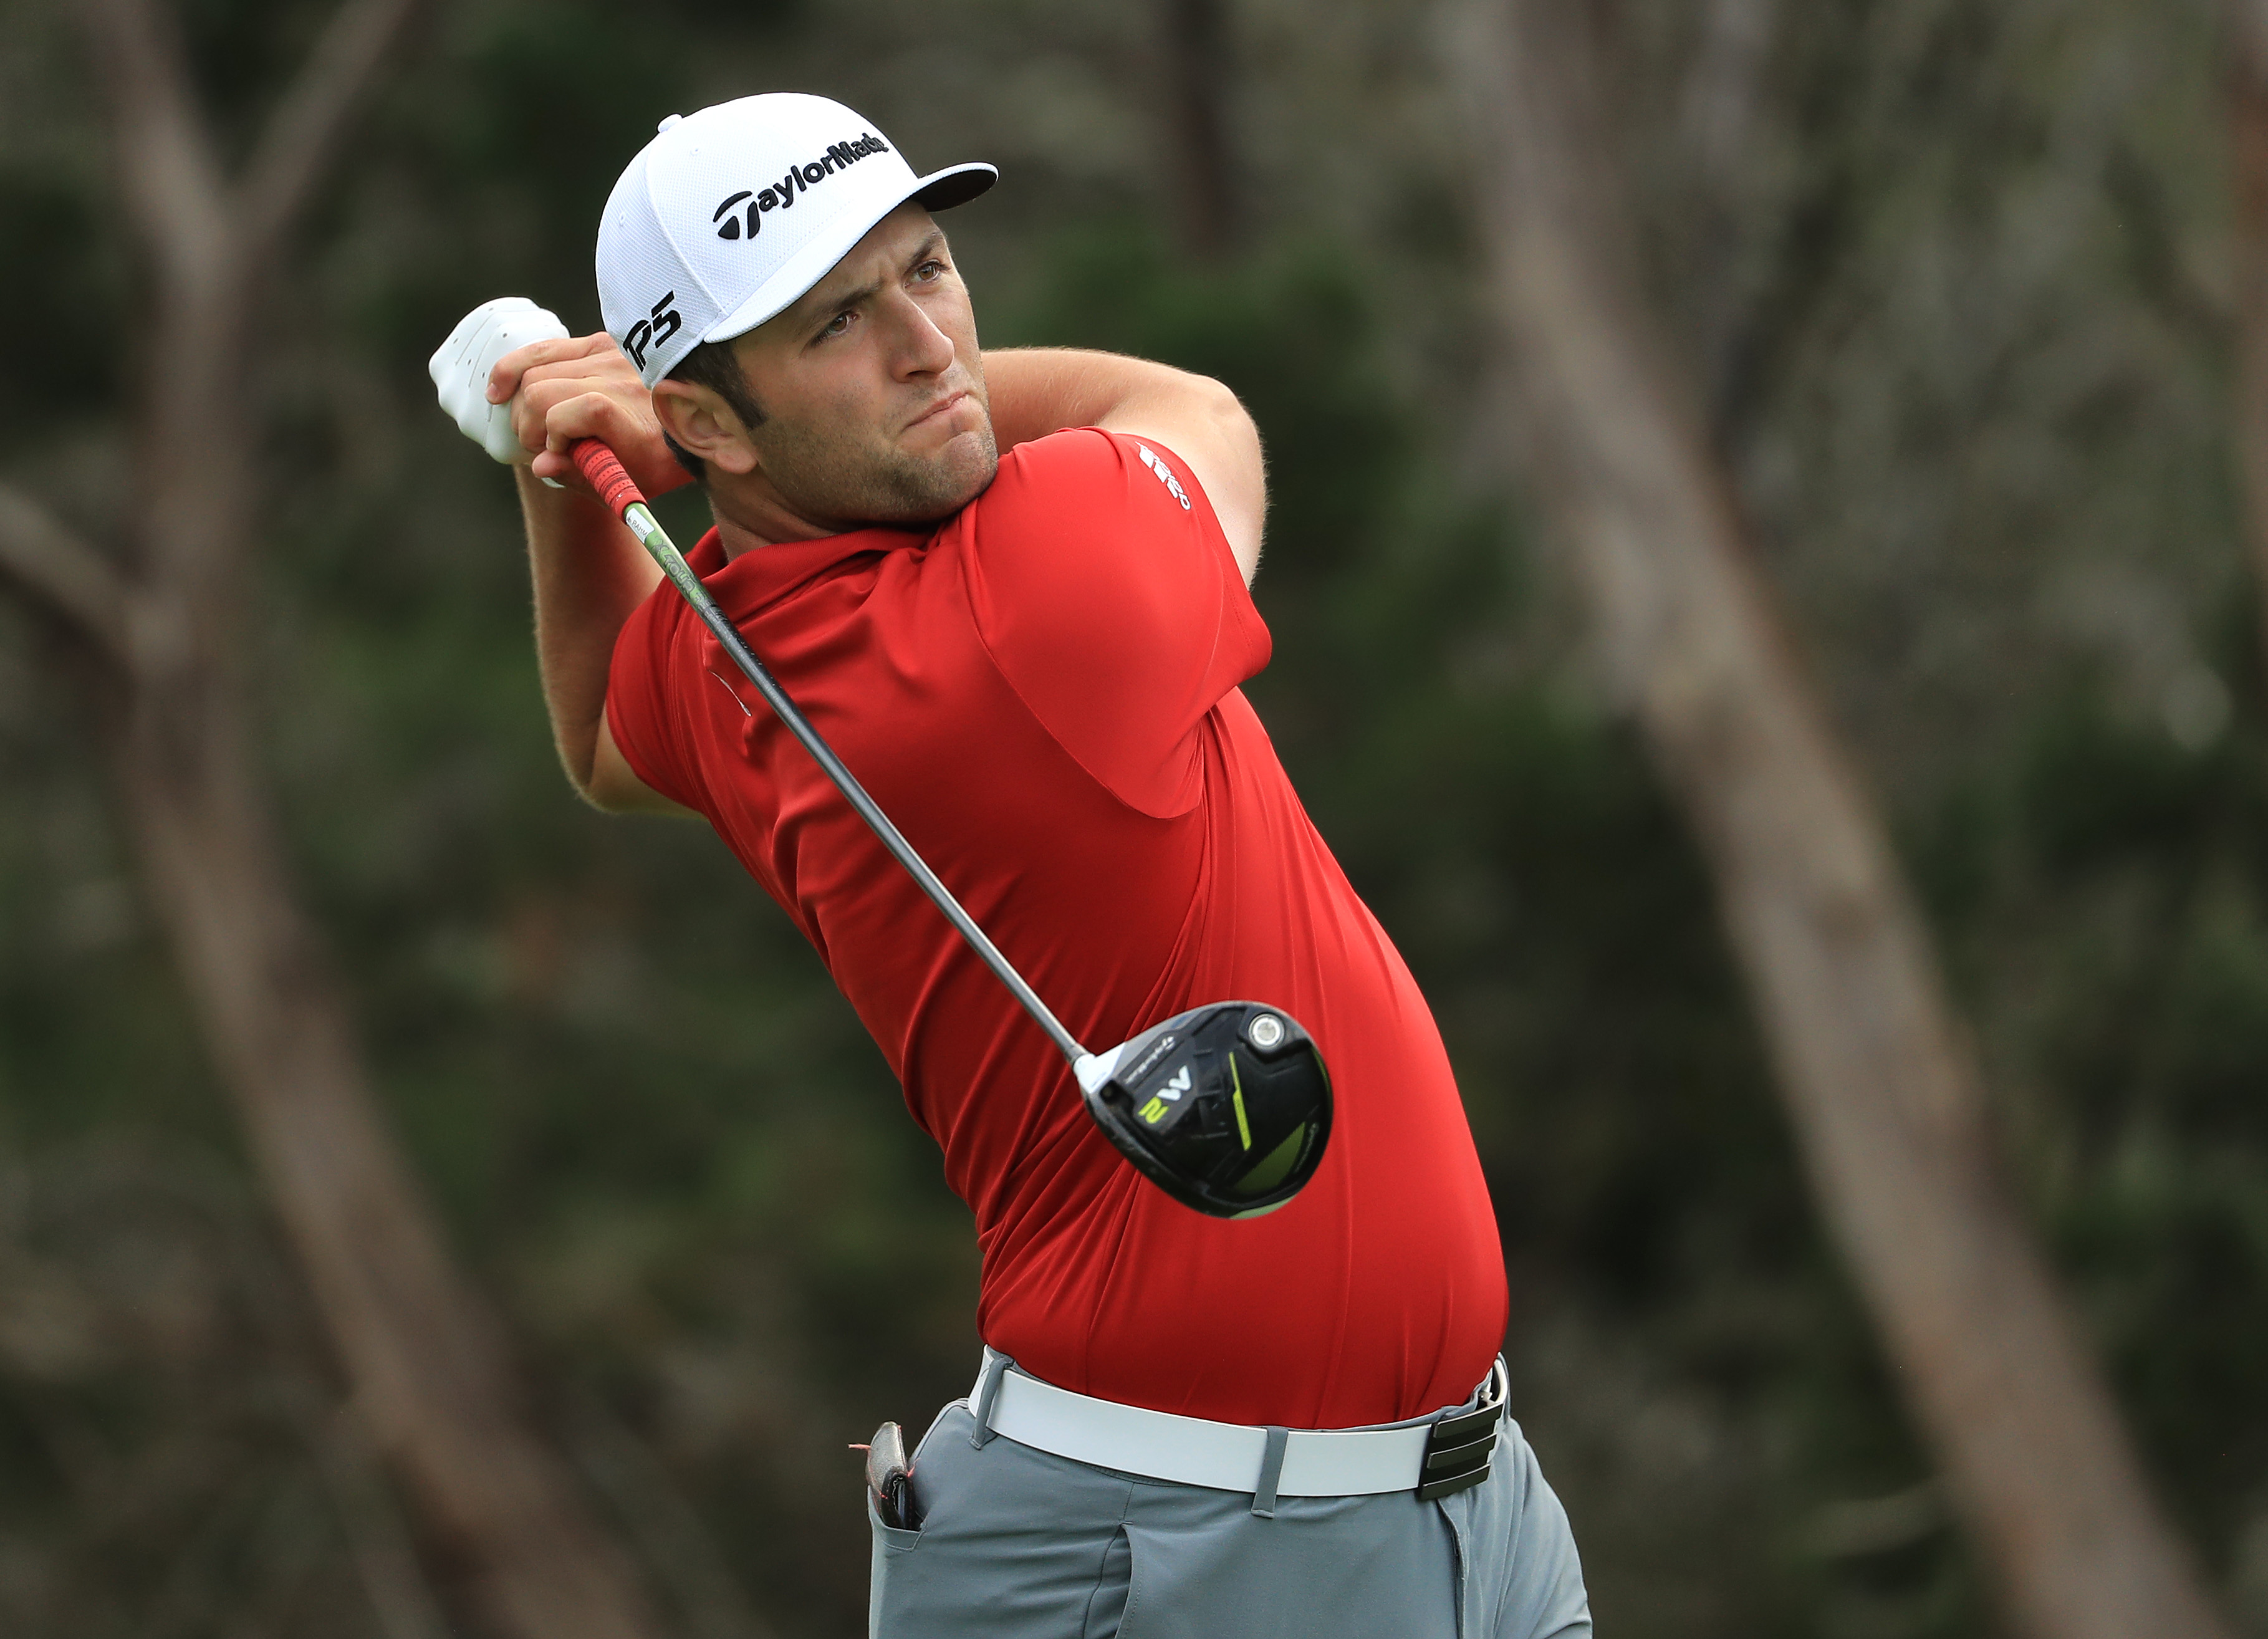 Jon Rahm of Spain tees off on the 2nd hole of his match during the semifinals of the World Golf Championships-Dell Technologies Match Play at the Austin Country Club on March 26, 2017 in Austin, Texas.